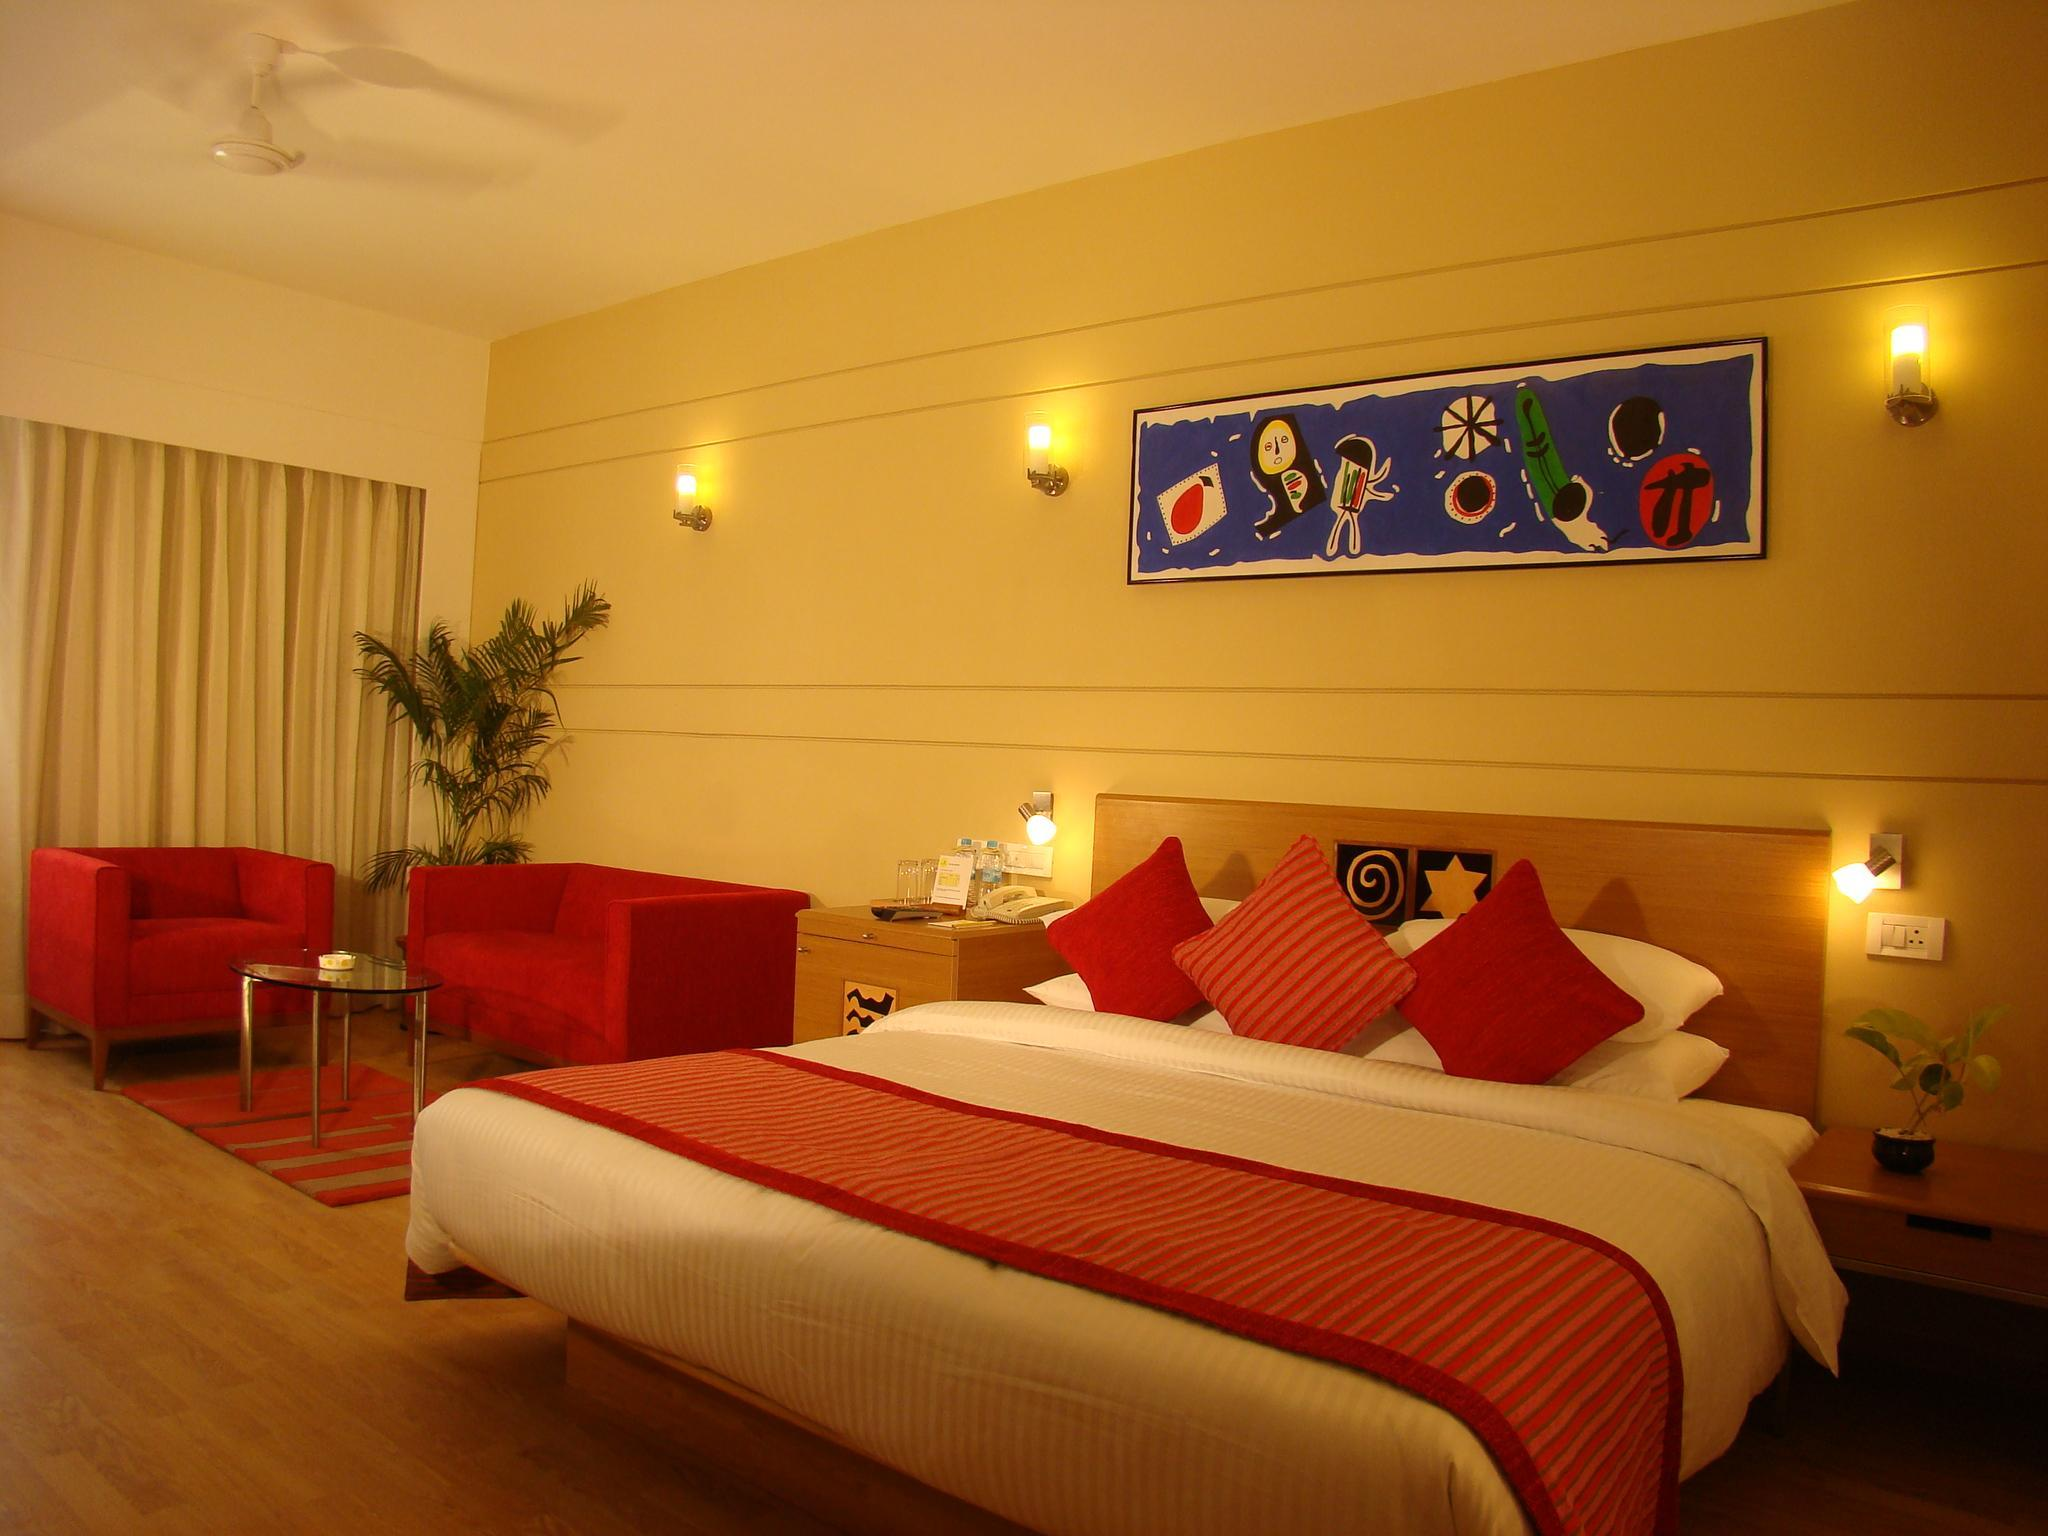 Lemon Tree Hotel Chennai - Chennai